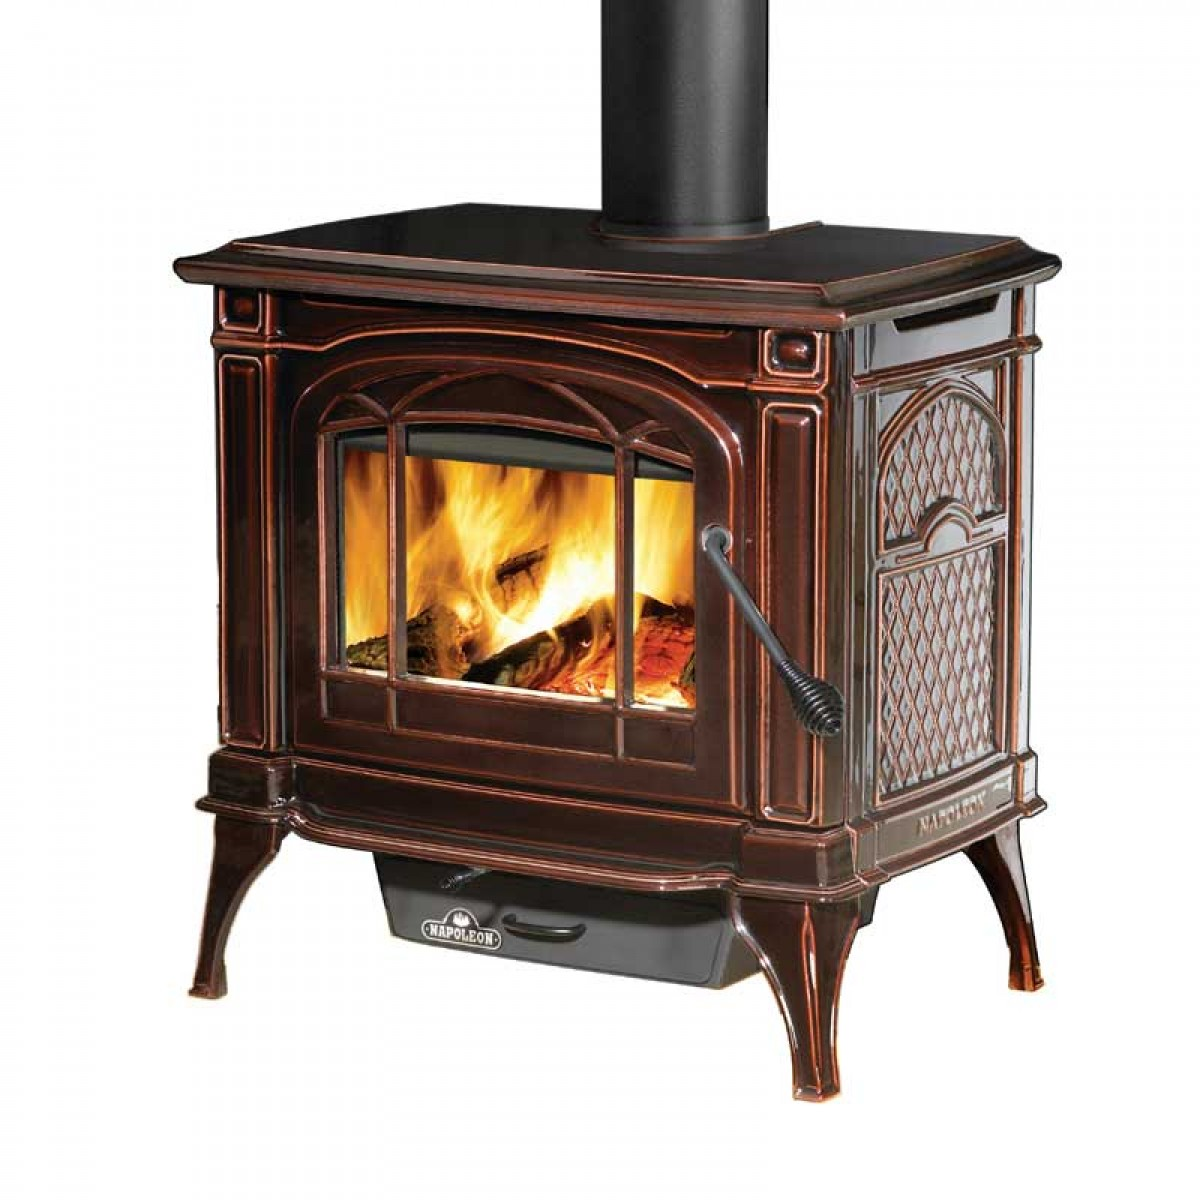 Napoleon 1100c banff cast iron wood burning stove at Wood burning stoves